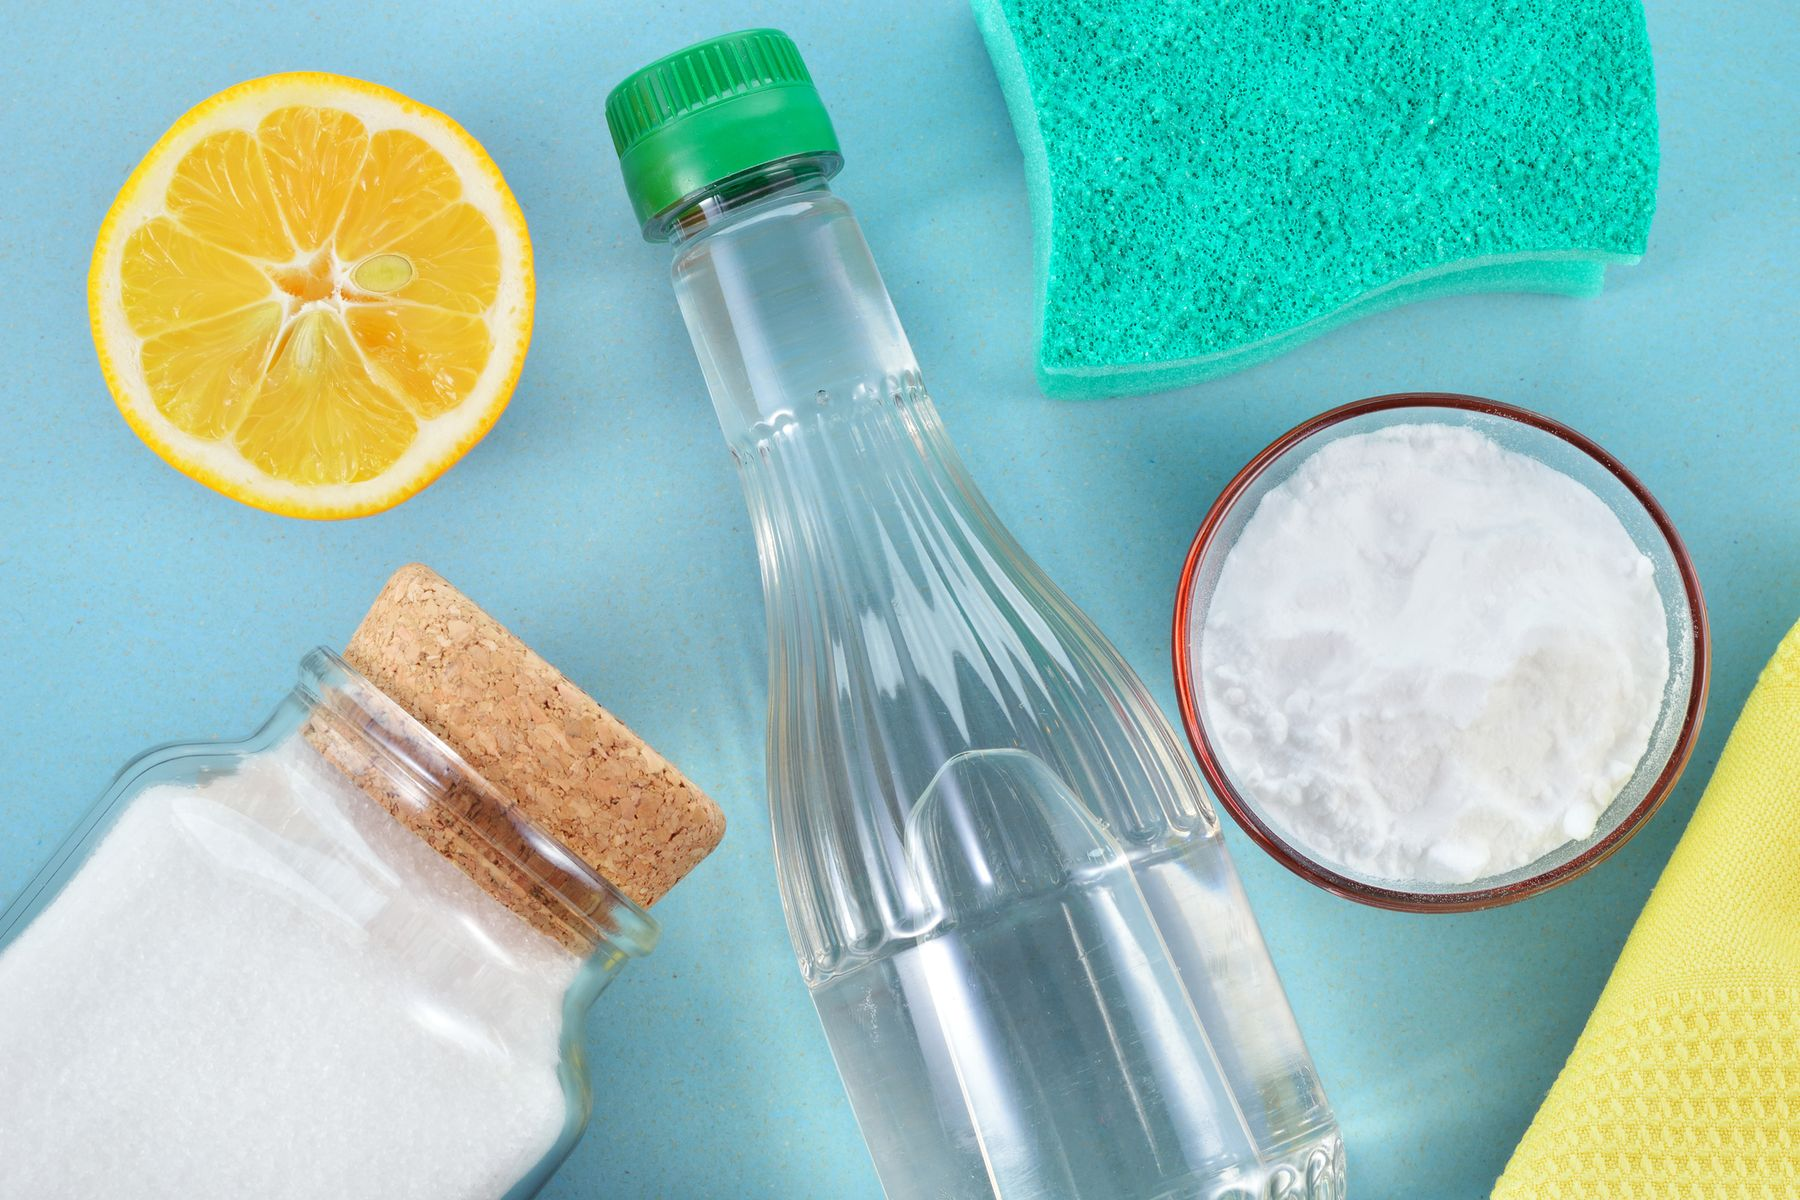 Lemon, baking soda, a bottle of vinegar and cleaning cloths for getting sweat stains out of clothes without washing